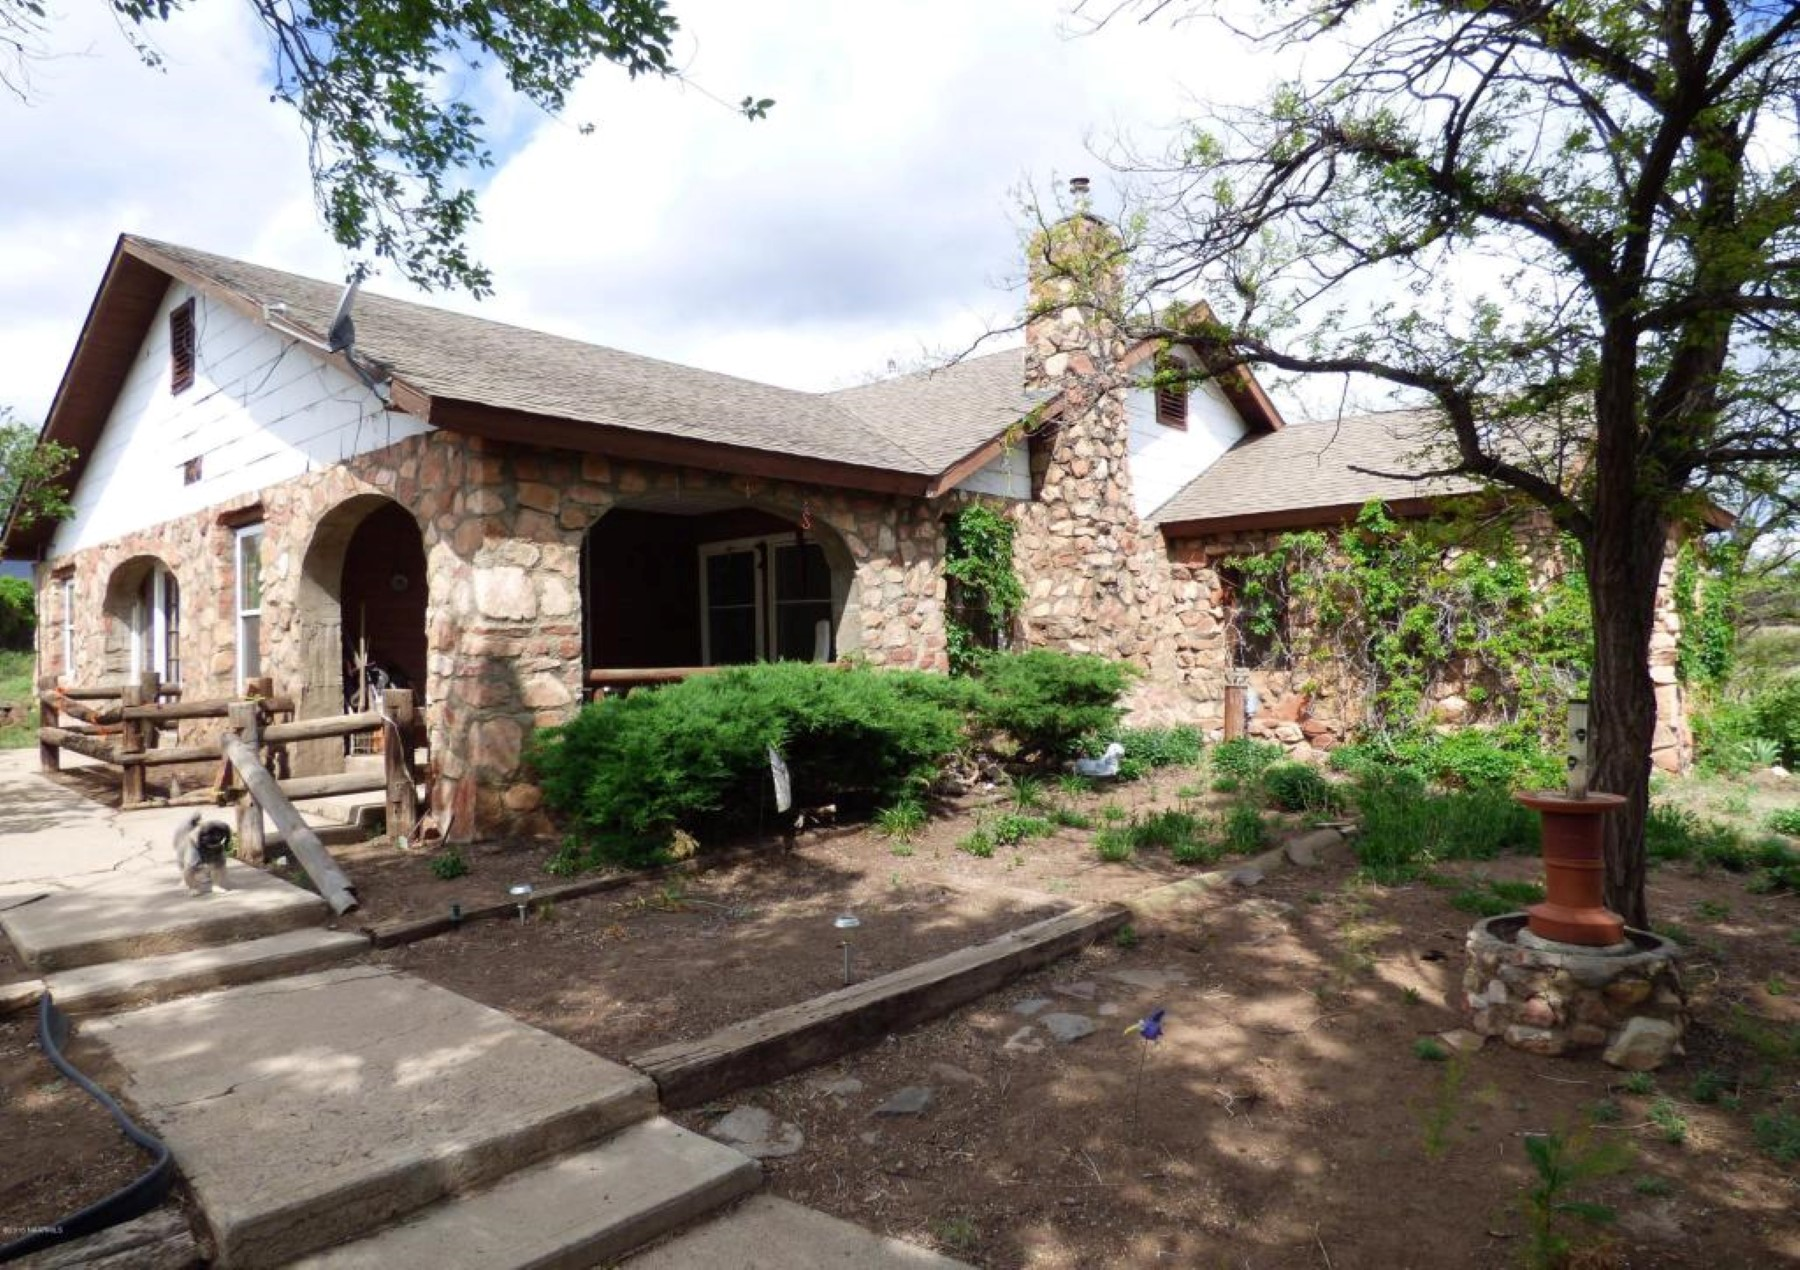 Single Family Home for Sale at Historic rock house has never before been on the market. 13470 N Hwy 89 Flagstaff, Arizona 86004 United States